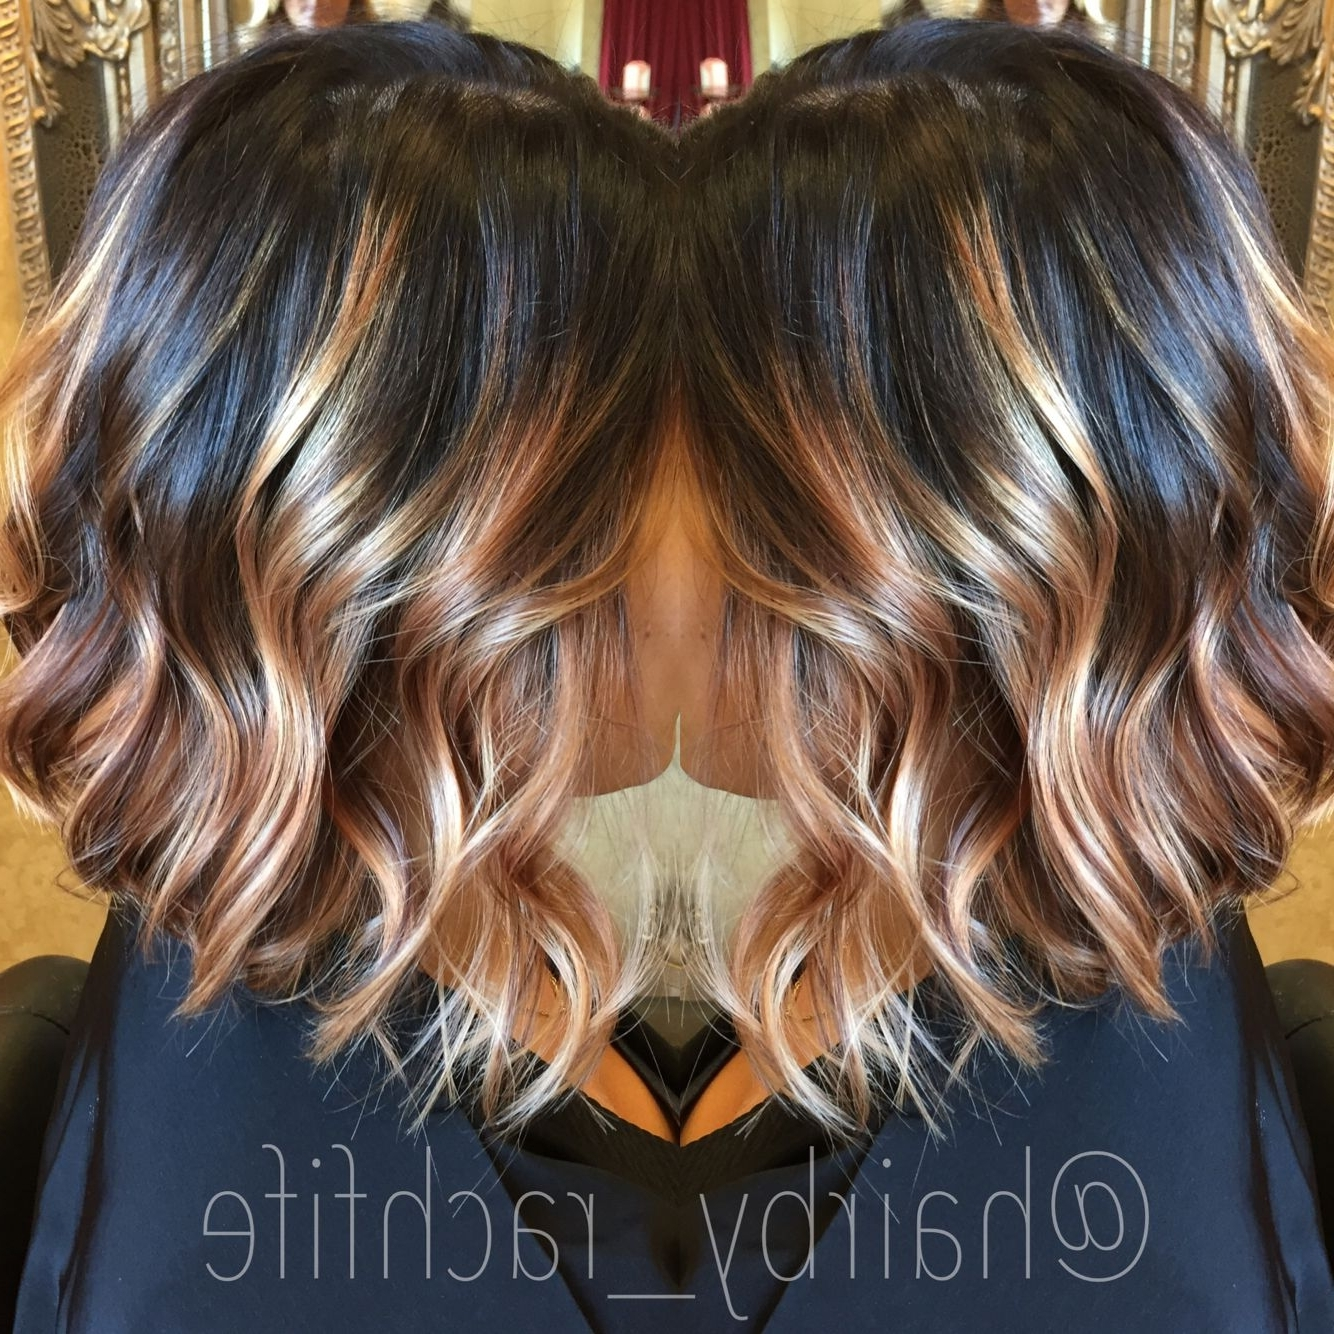 Most Recent Rooty Long Bob Blonde Hairstyles Regarding Best Dark Stretched Root With Blonde Balayage A Long Bob Haircut (View 13 of 20)